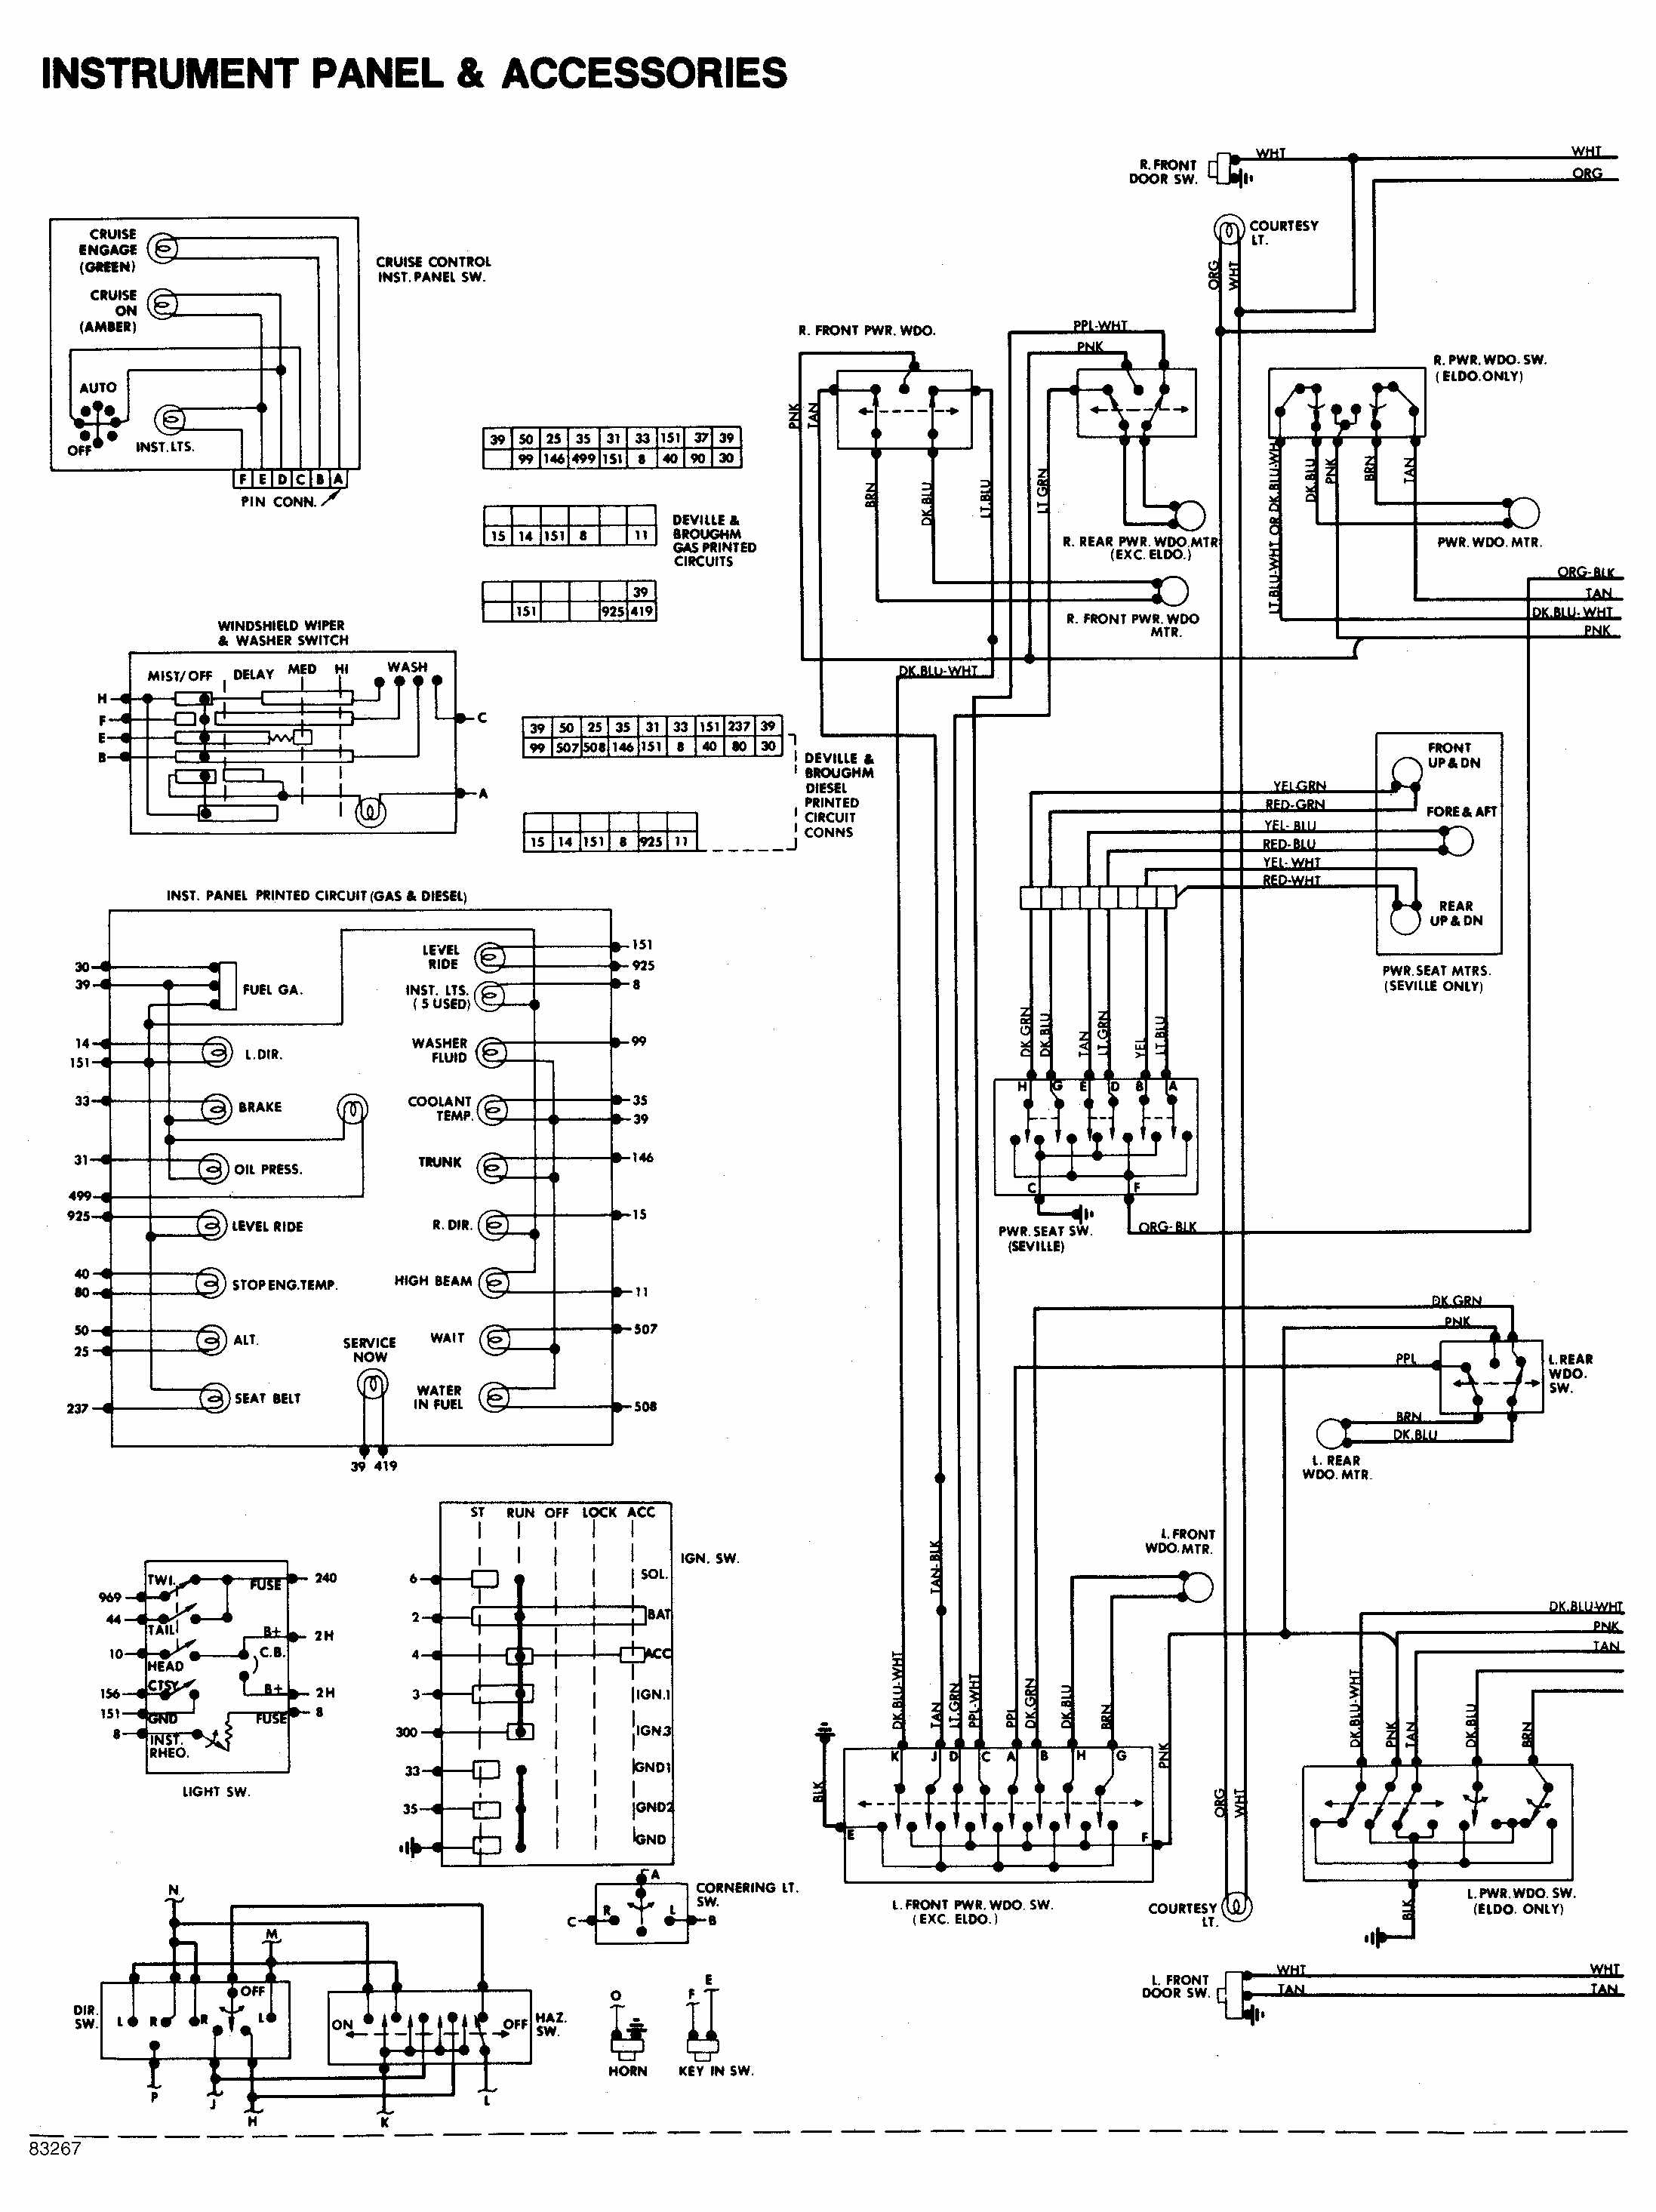 1984 K5 Blazer Fuse Box Free Wiring Diagram For You Ford 7 Pin Hecho Pictures To On Pinterest